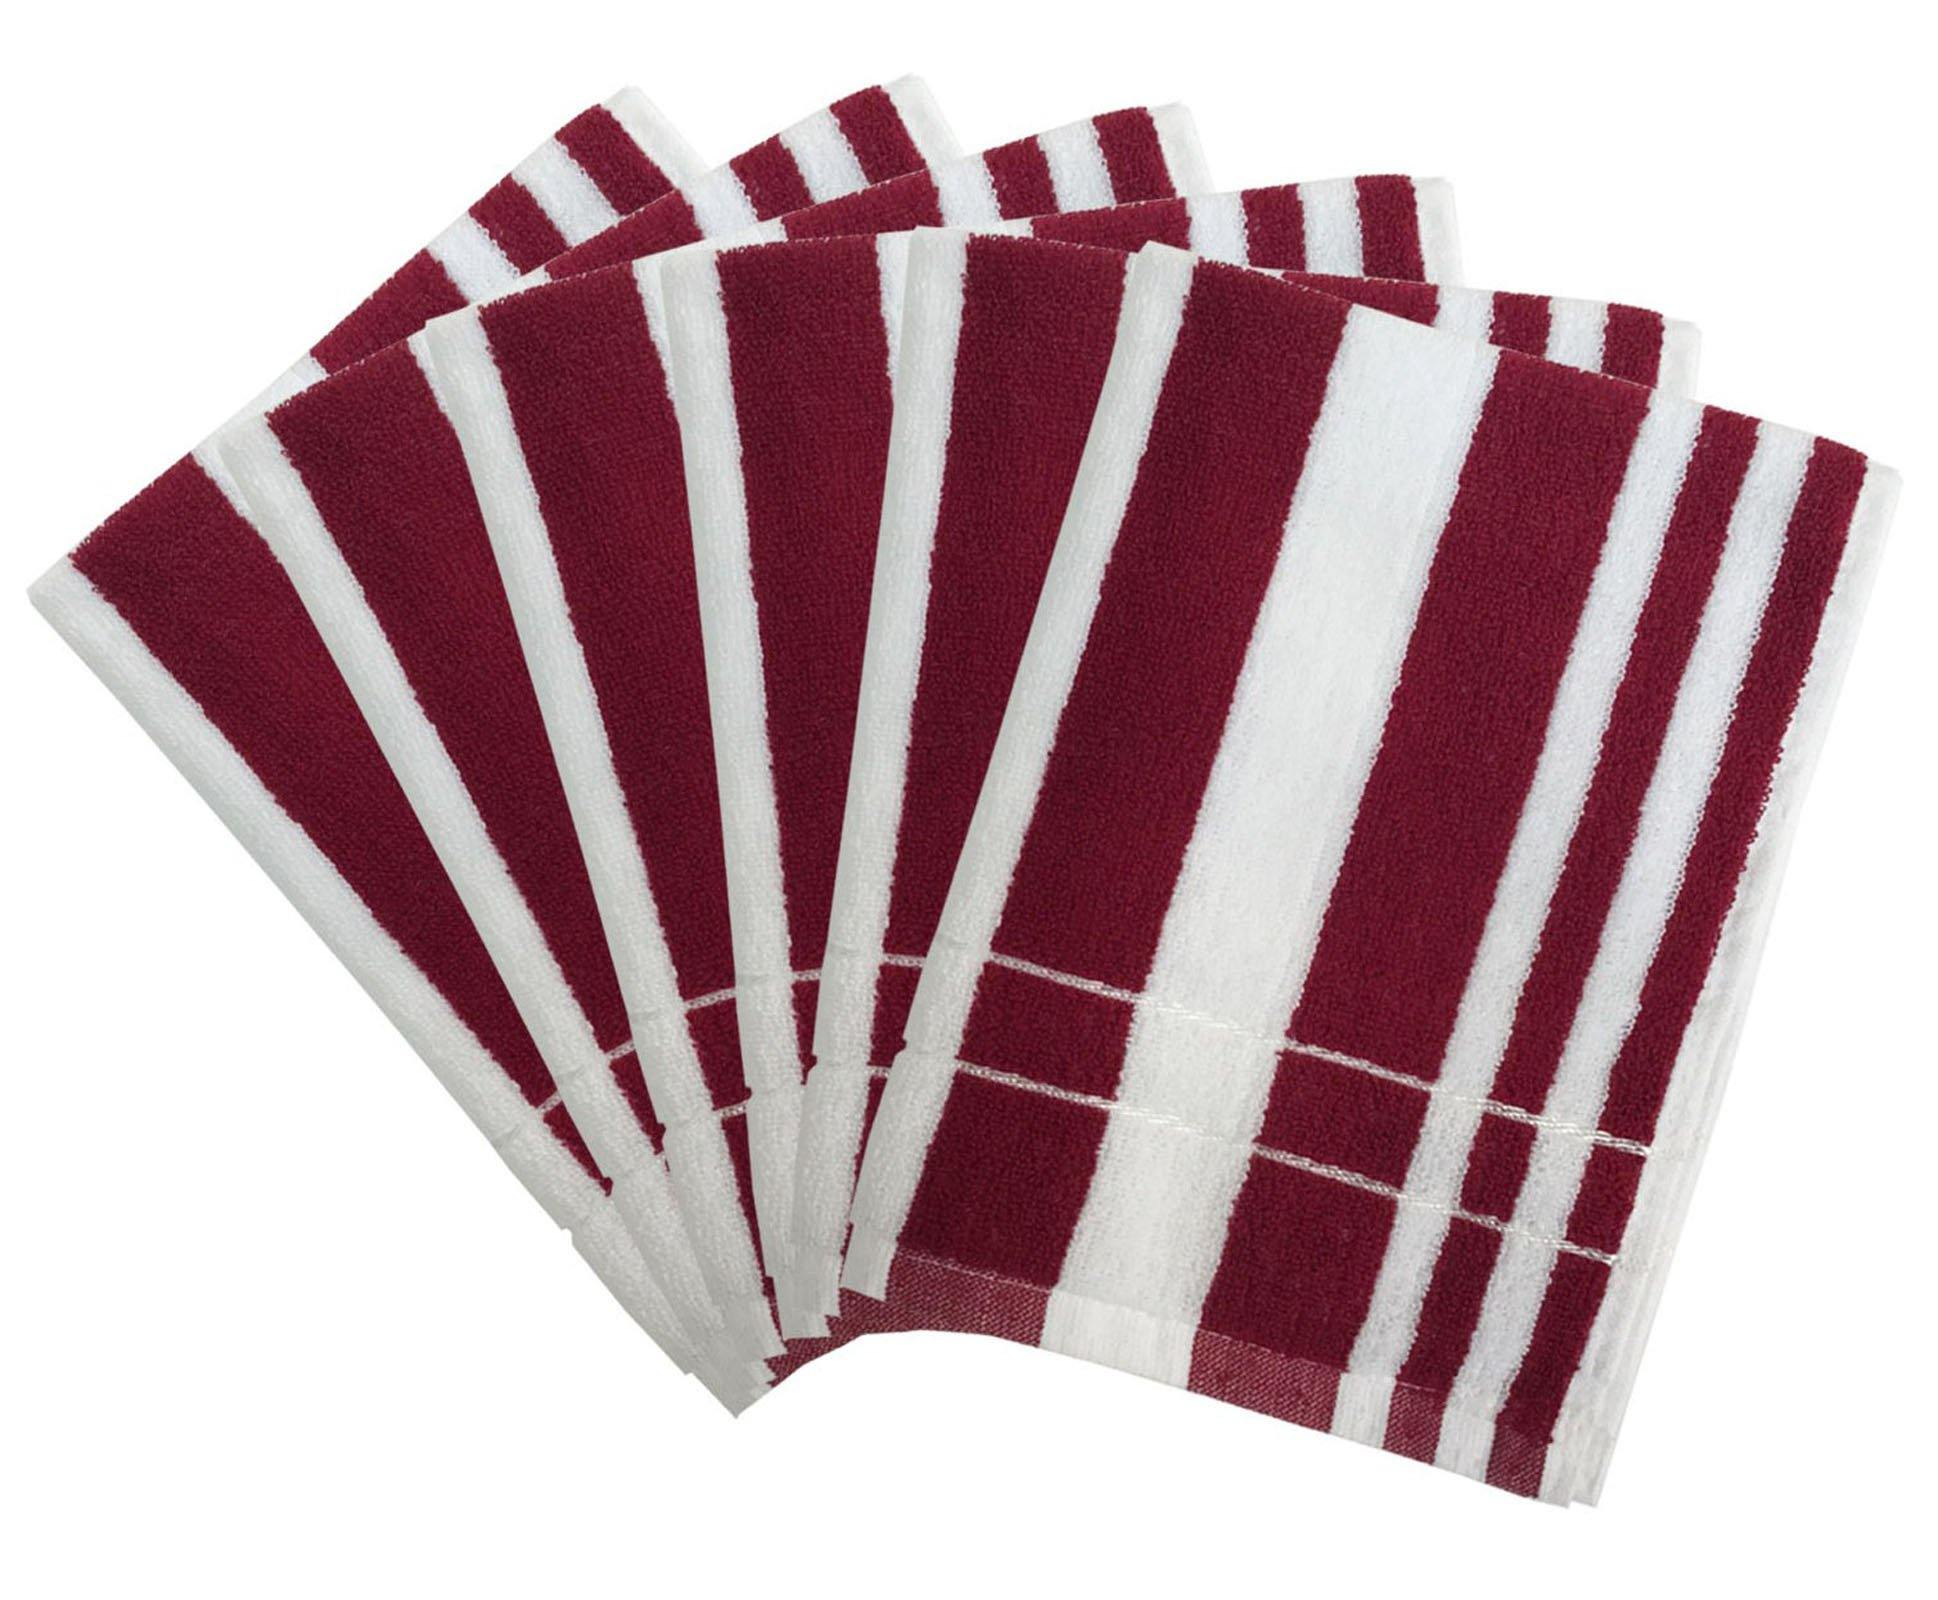 "Lushomes Maroon Cotton Hand towel Set with Ultra-Silky stripe Finish (16 x 24"" or 40 x 60 cms, 450 GSM, Pack of 6) - Lushomes"